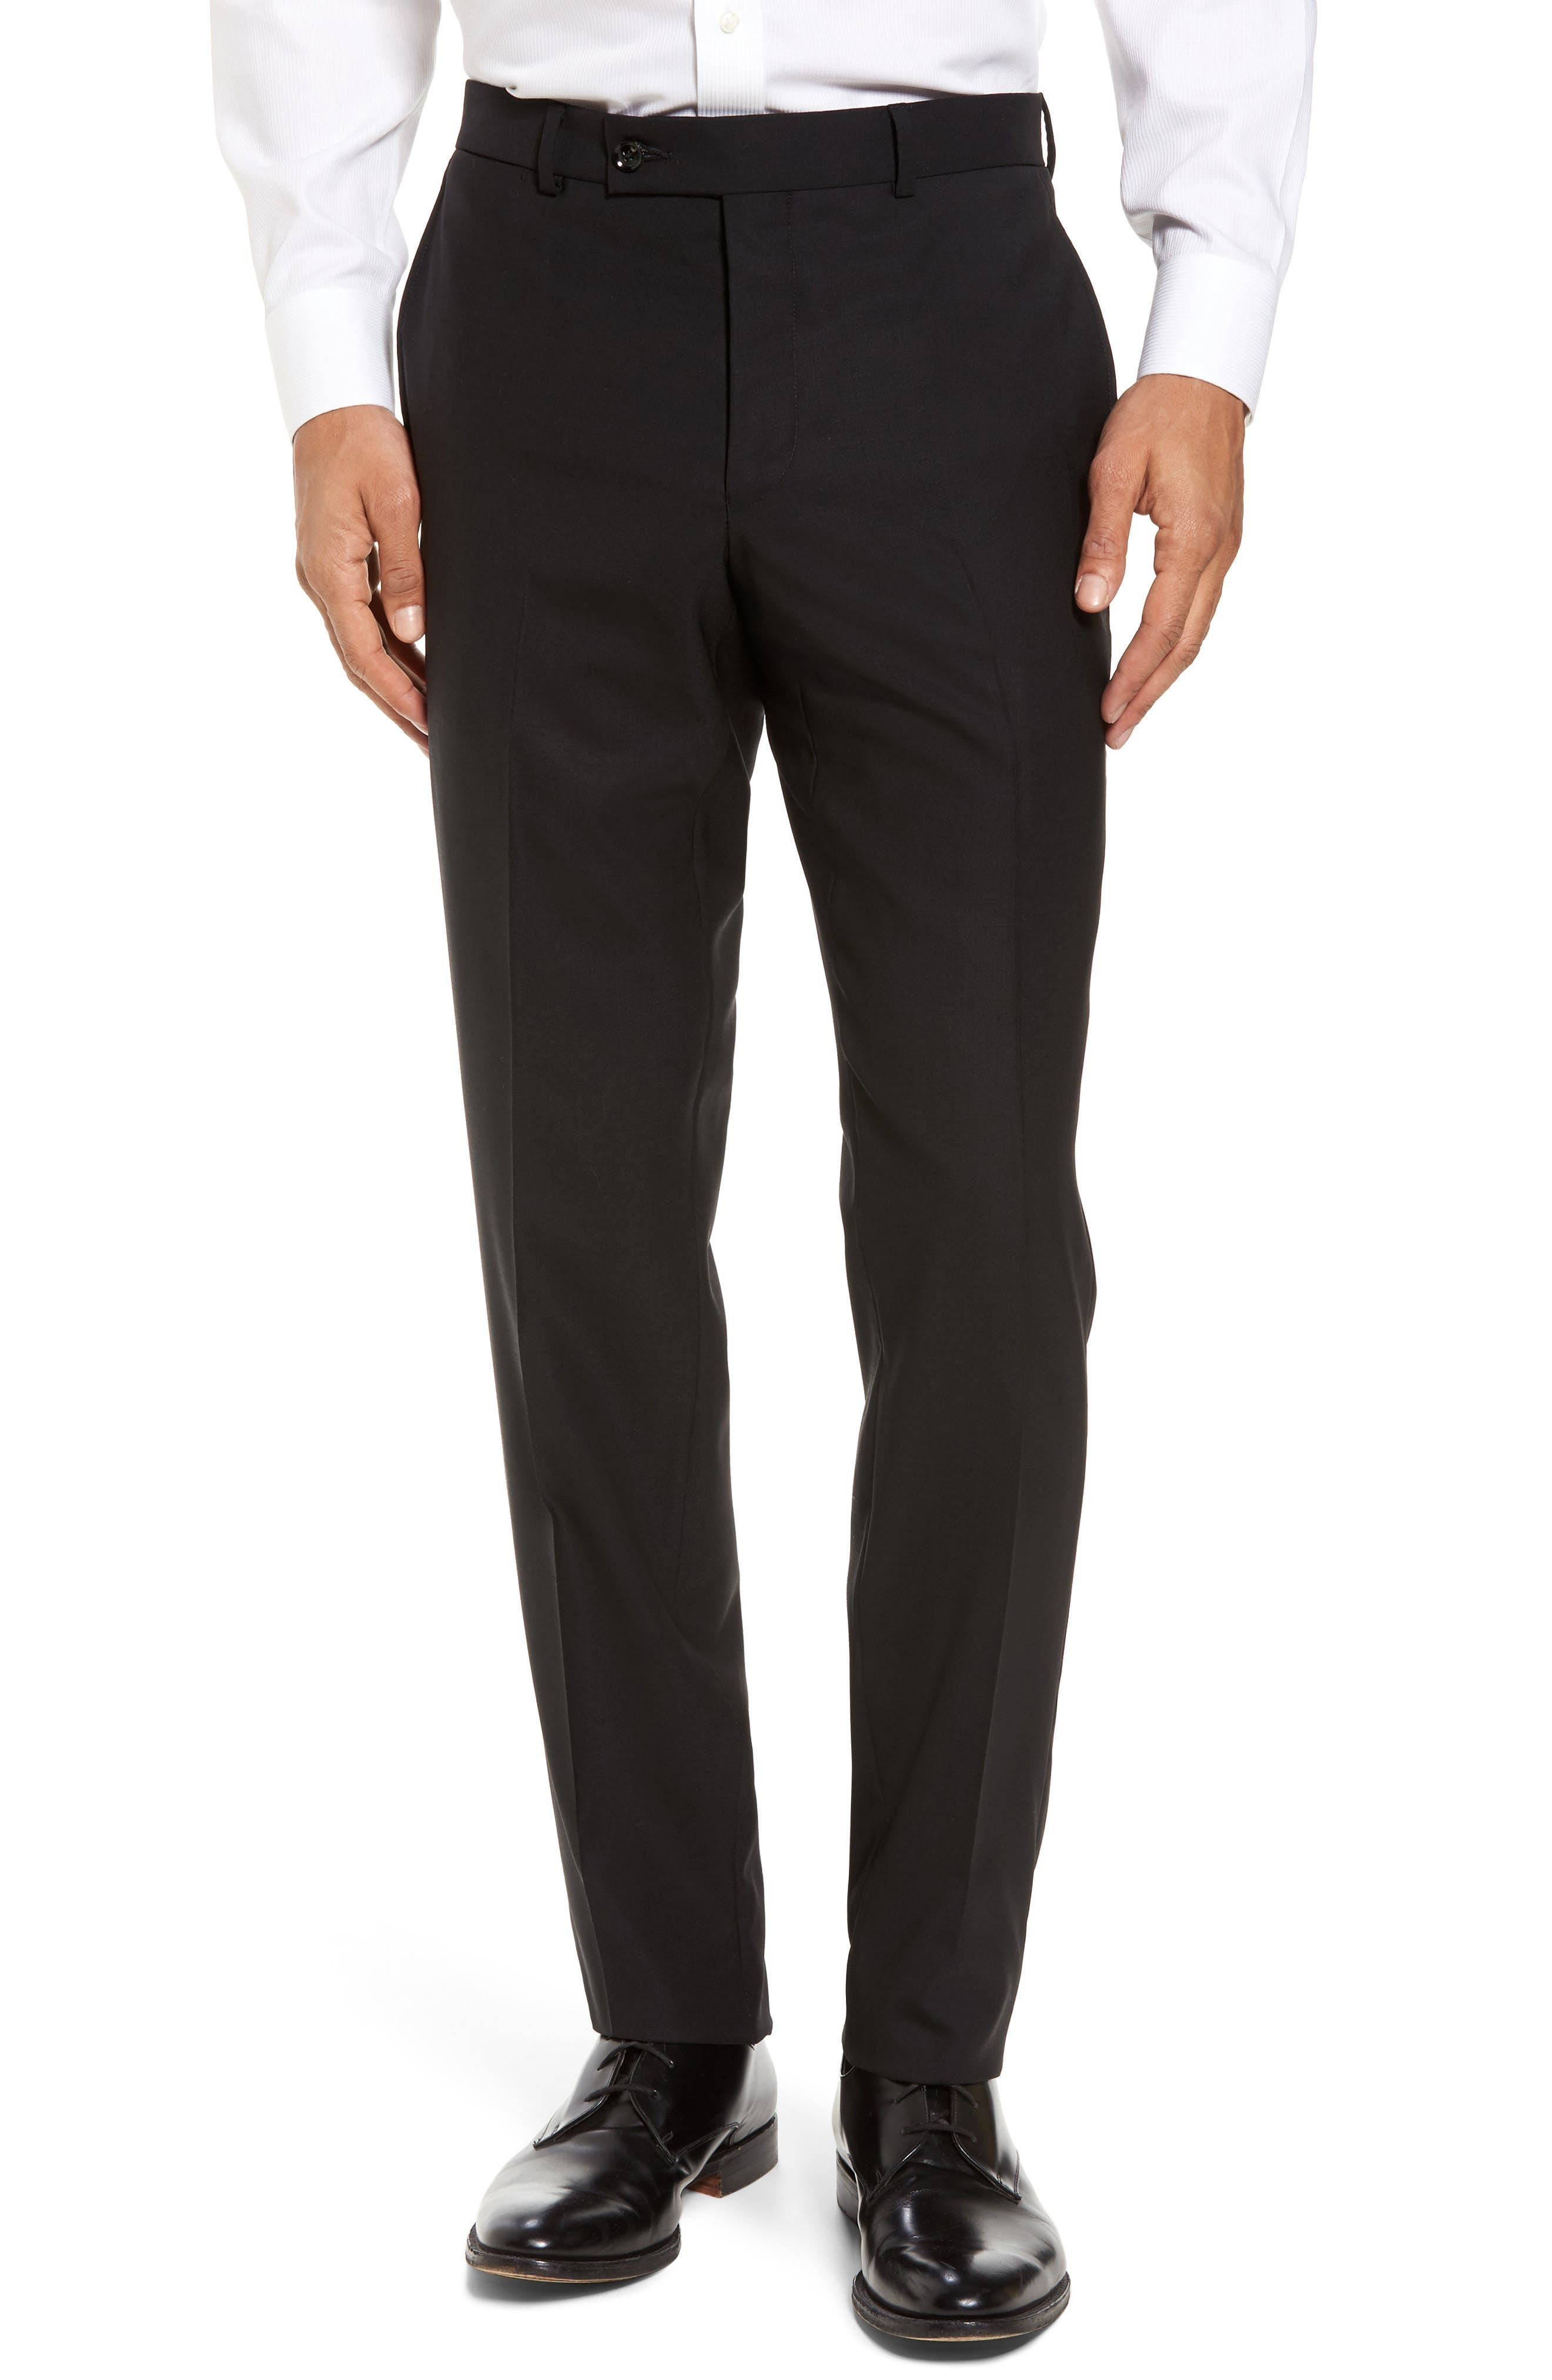 TED BAKER LONDON Jefferson Flat Front Solid Wool Trousers, Main, color, BLACK